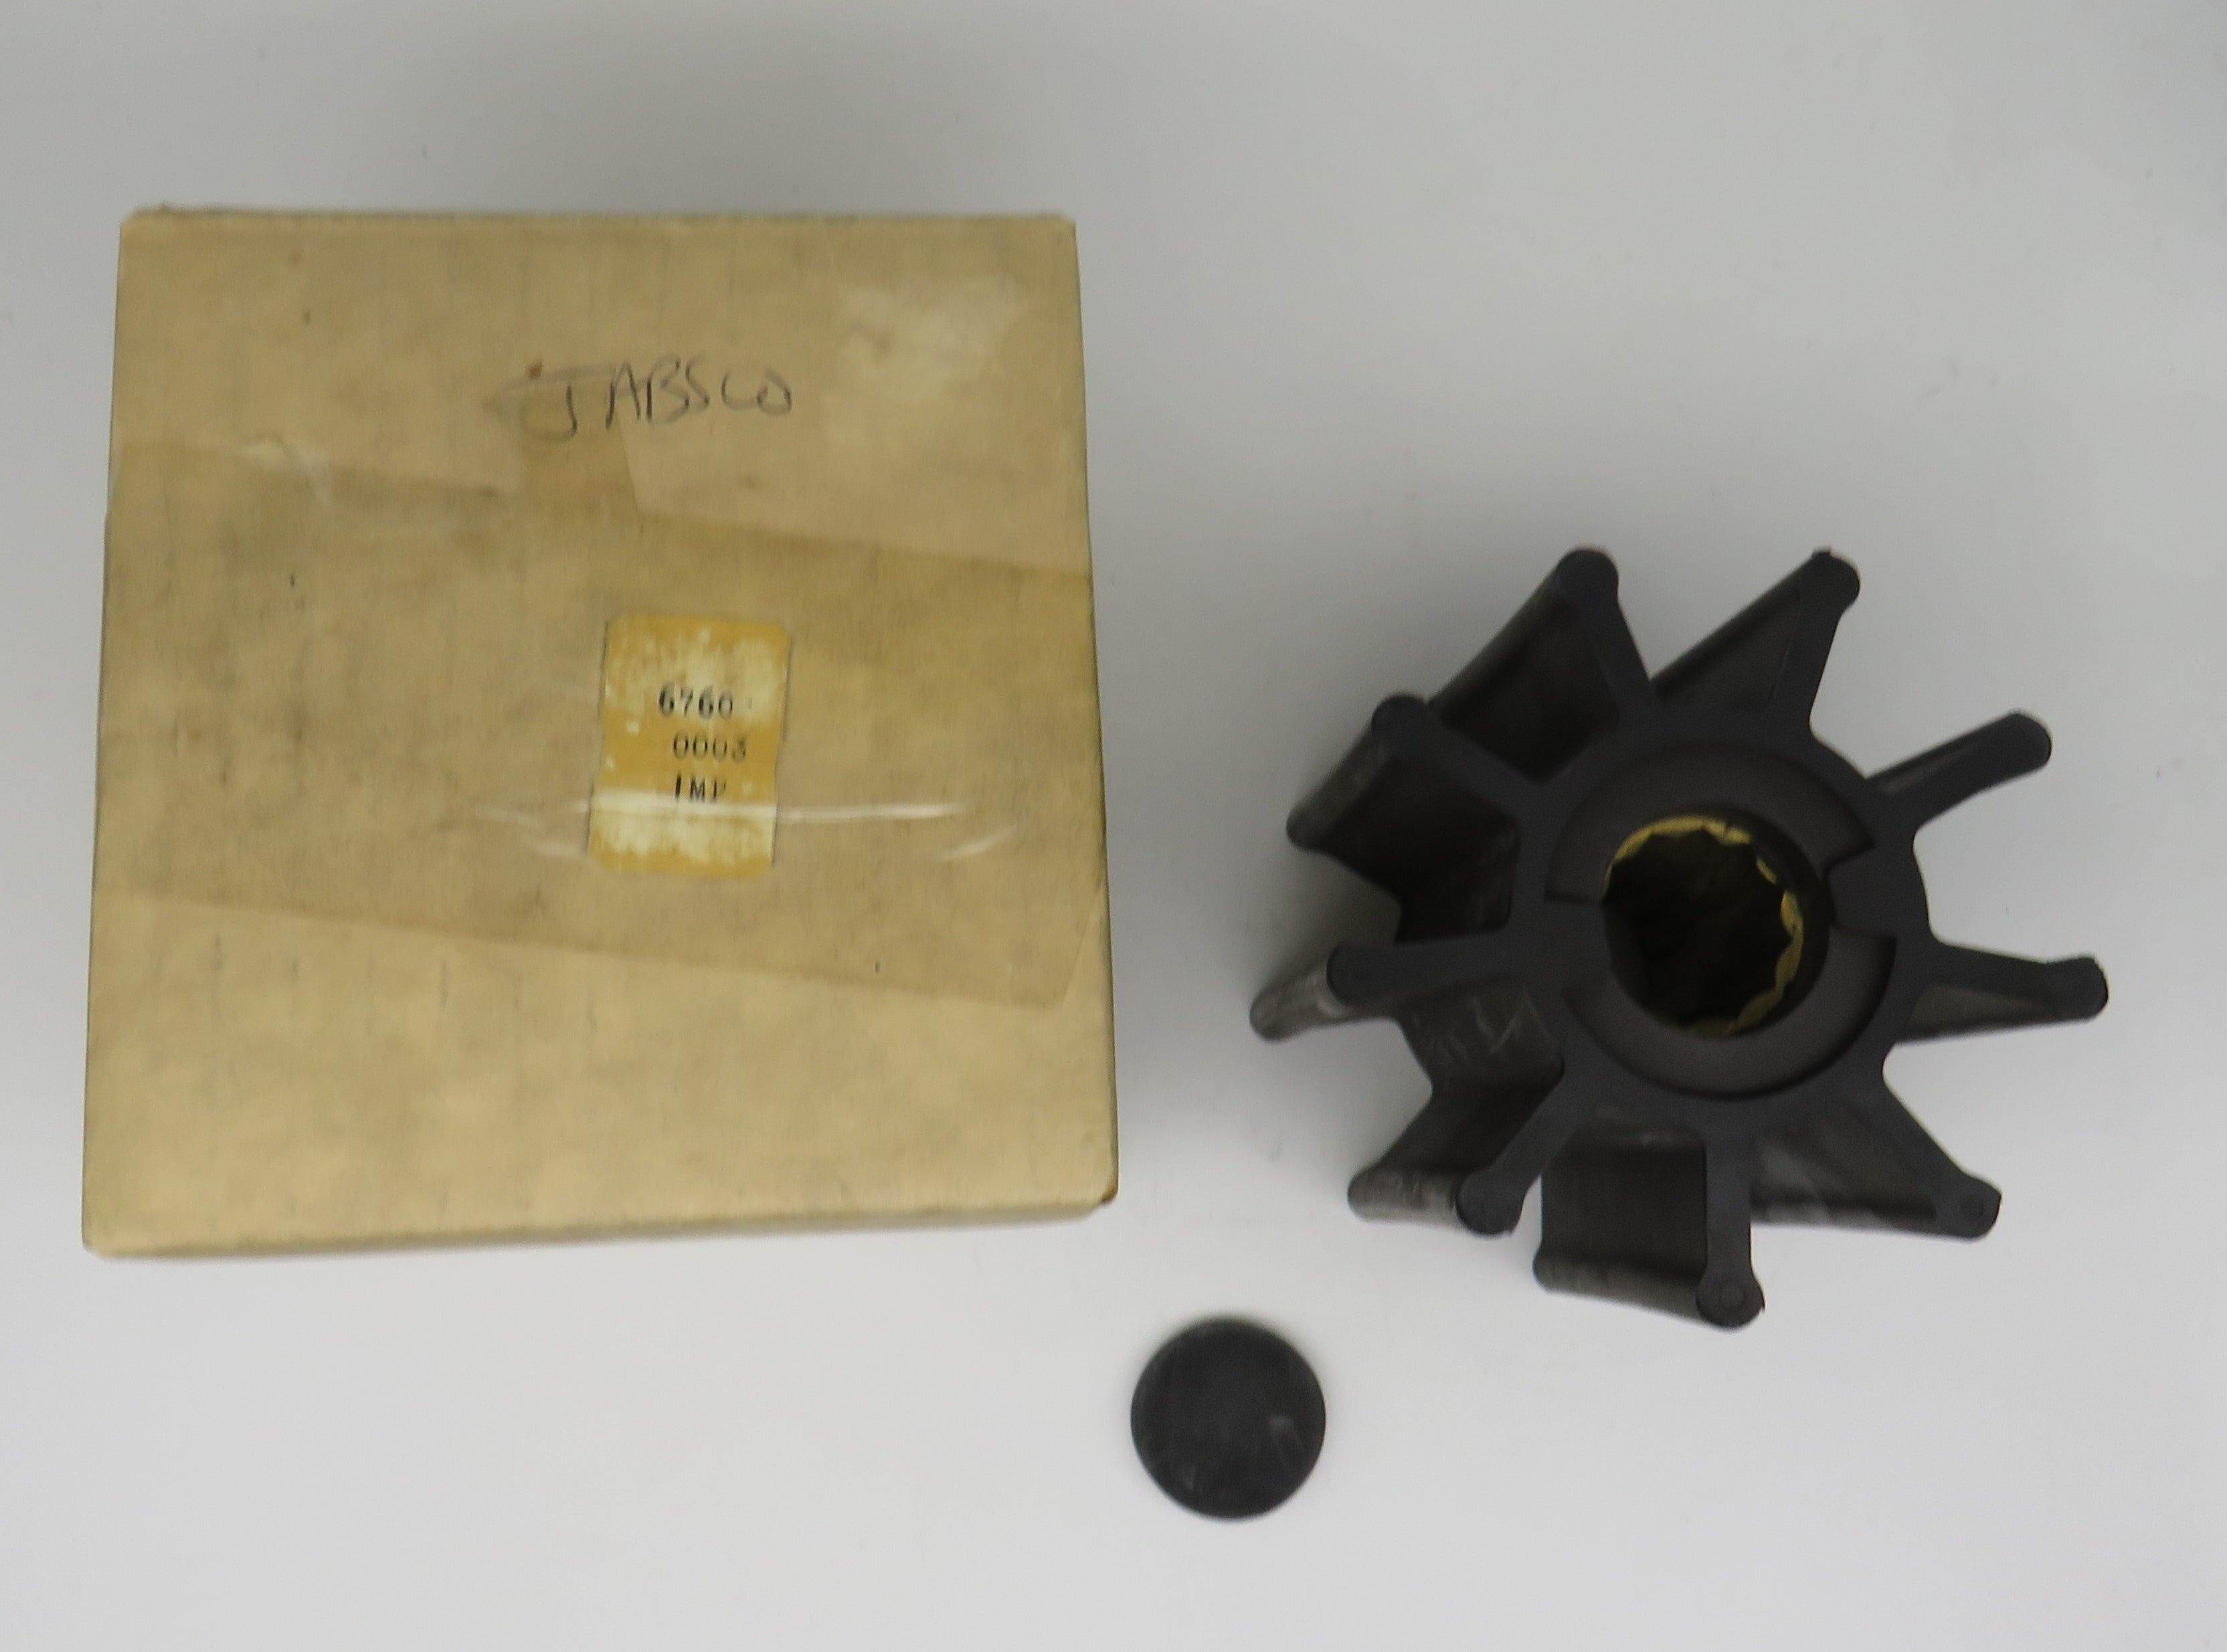 6760-0003 Jabsco Par Impeller